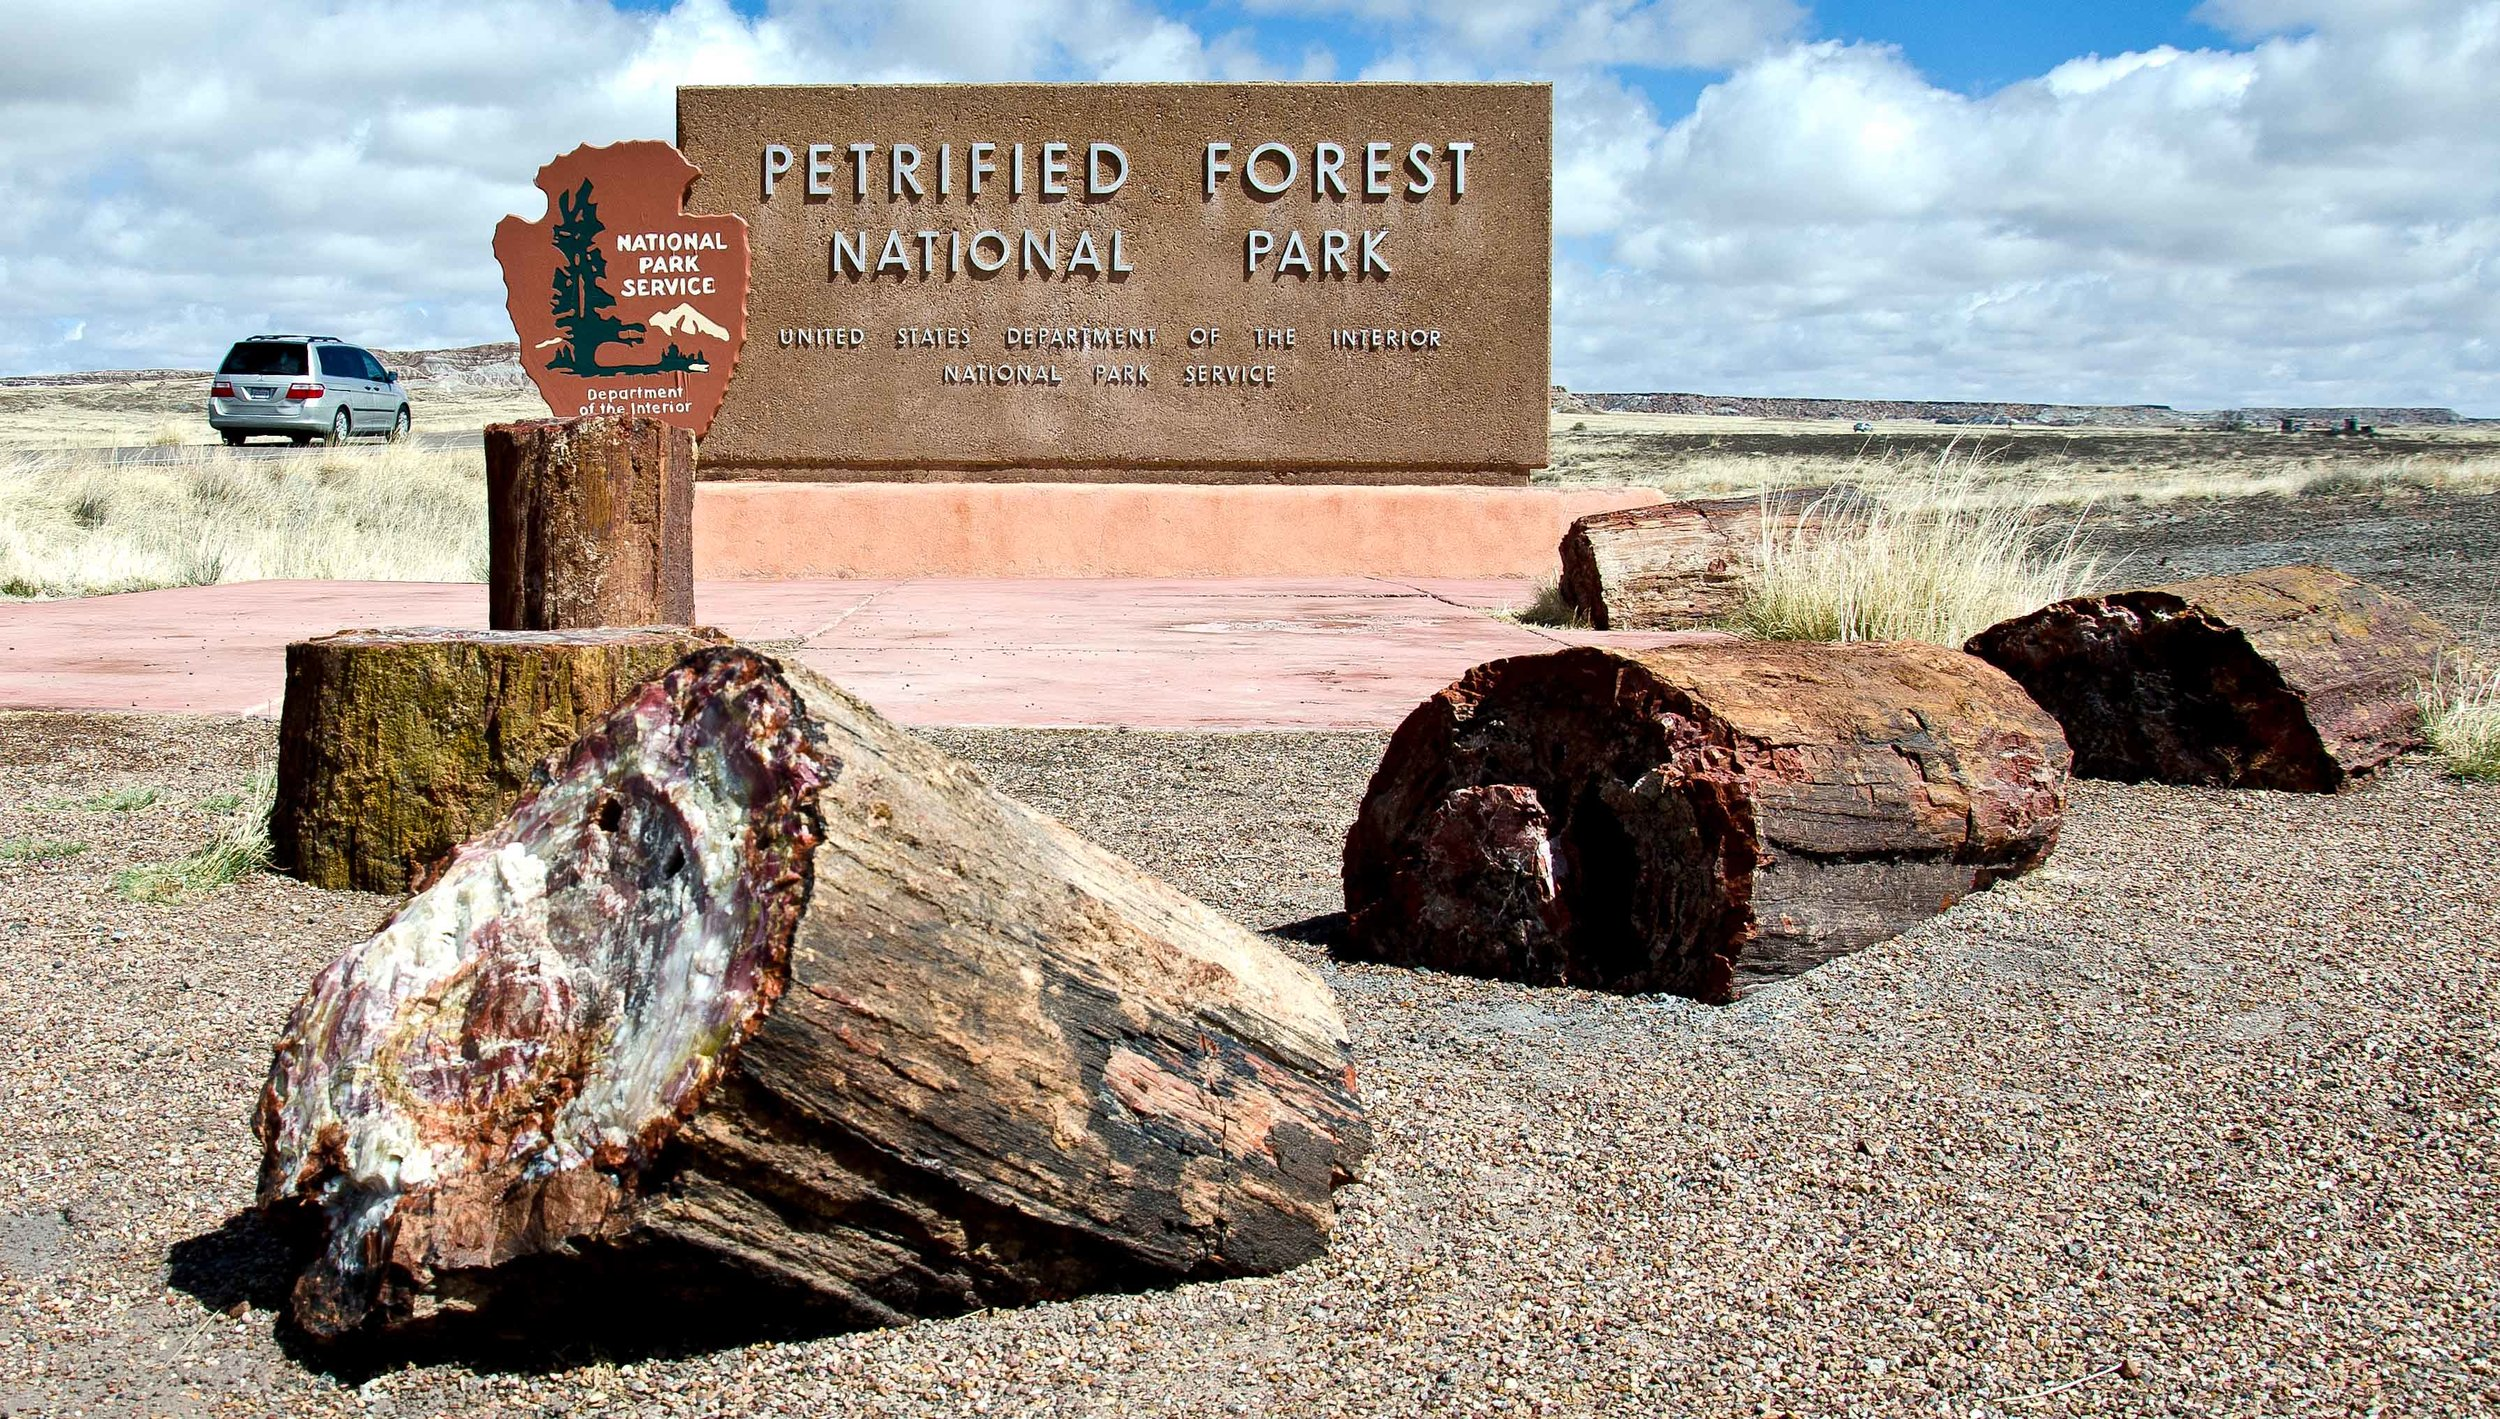 Fun Fact: The Petrified Forest is the only National Park in the U.S. to include and protect a section of Route 66.